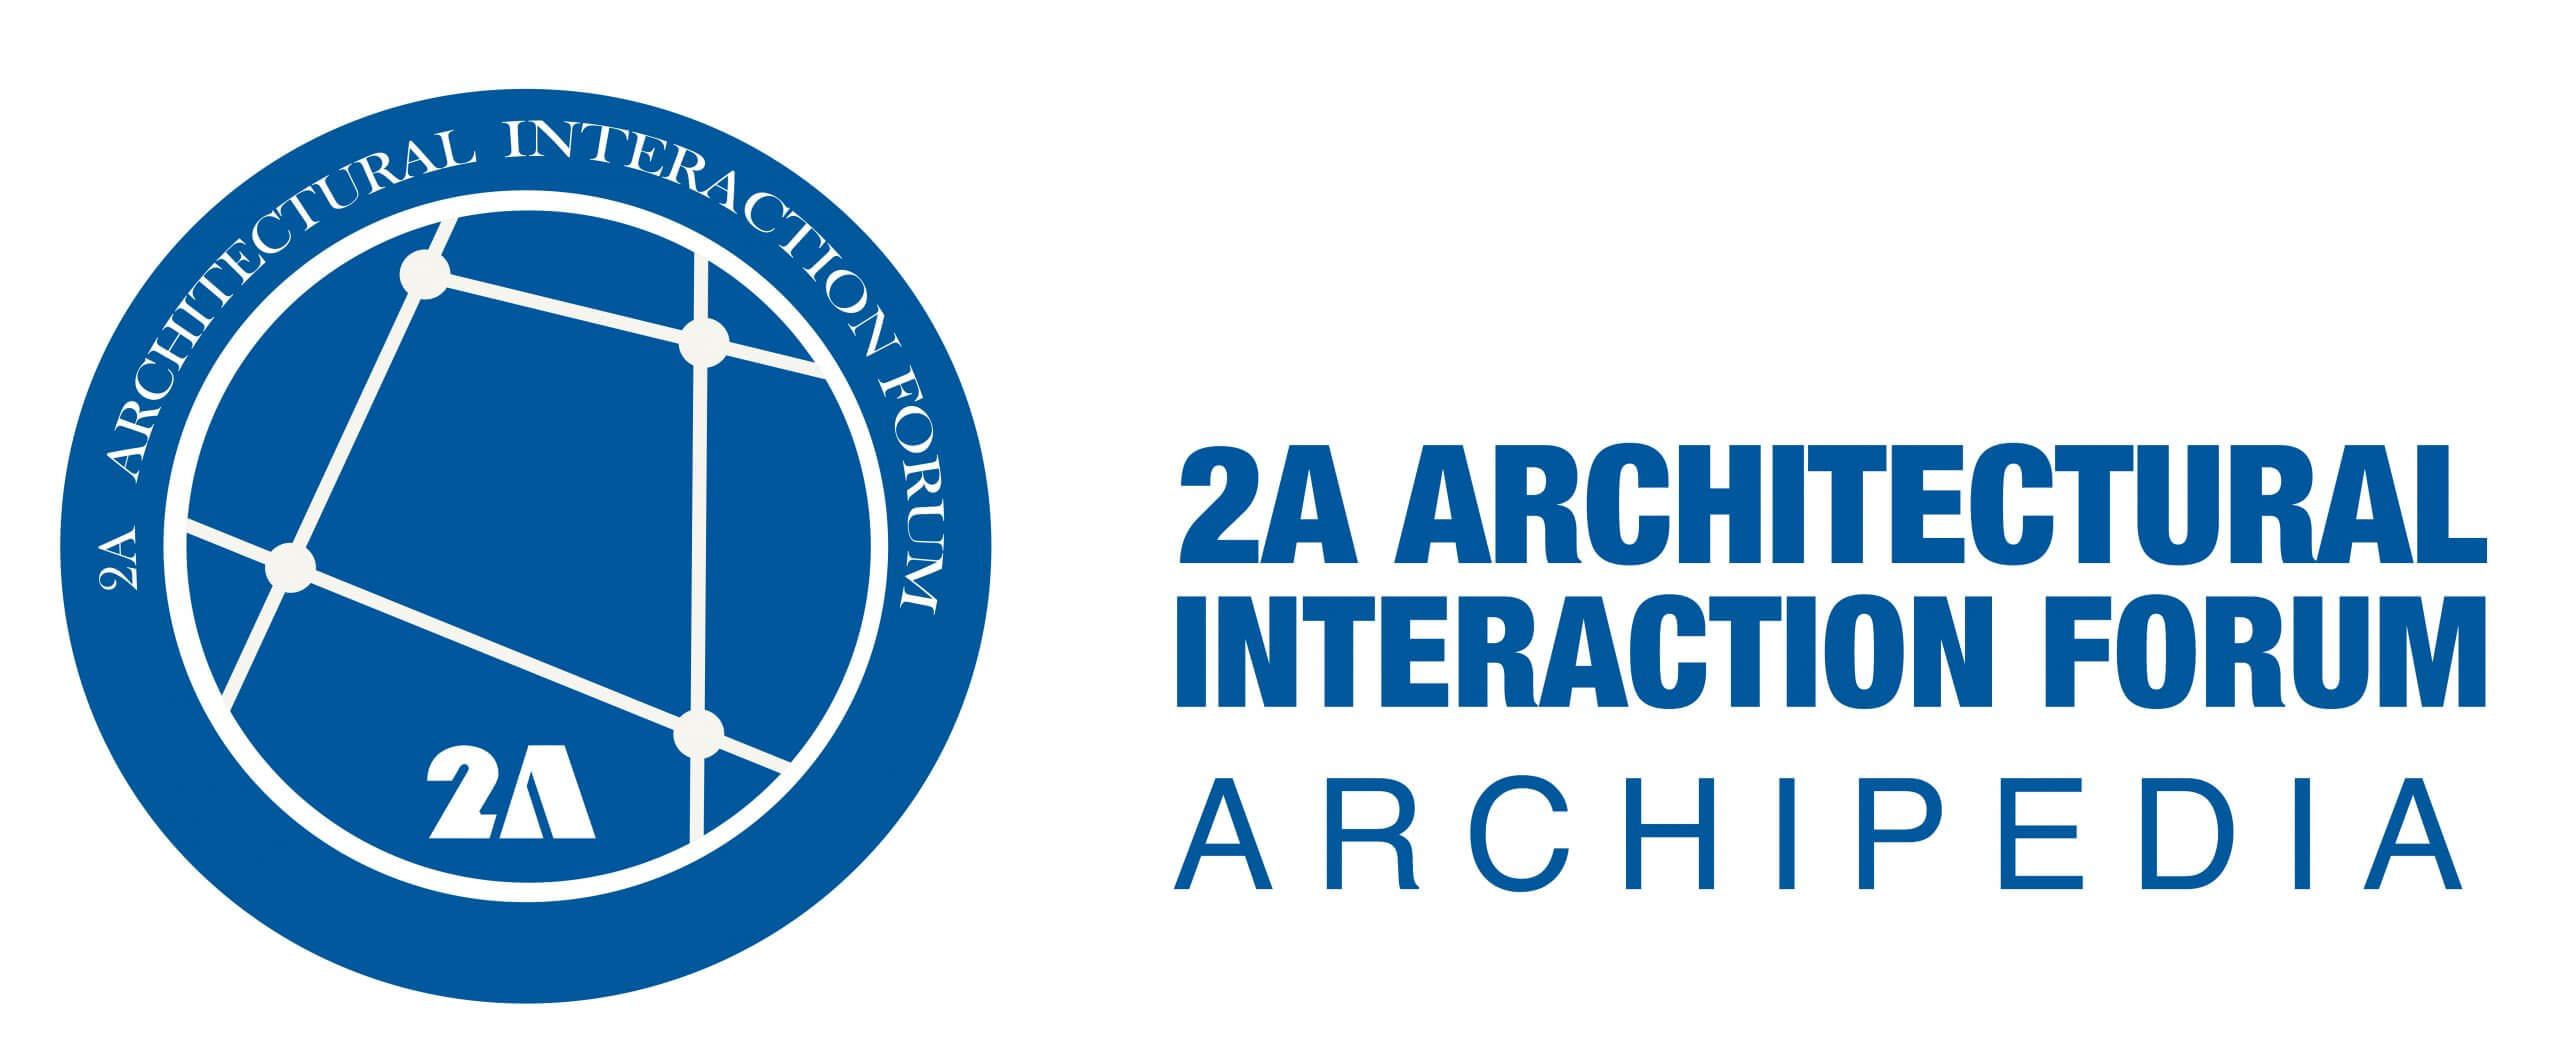 2a Architectural interaction Forum